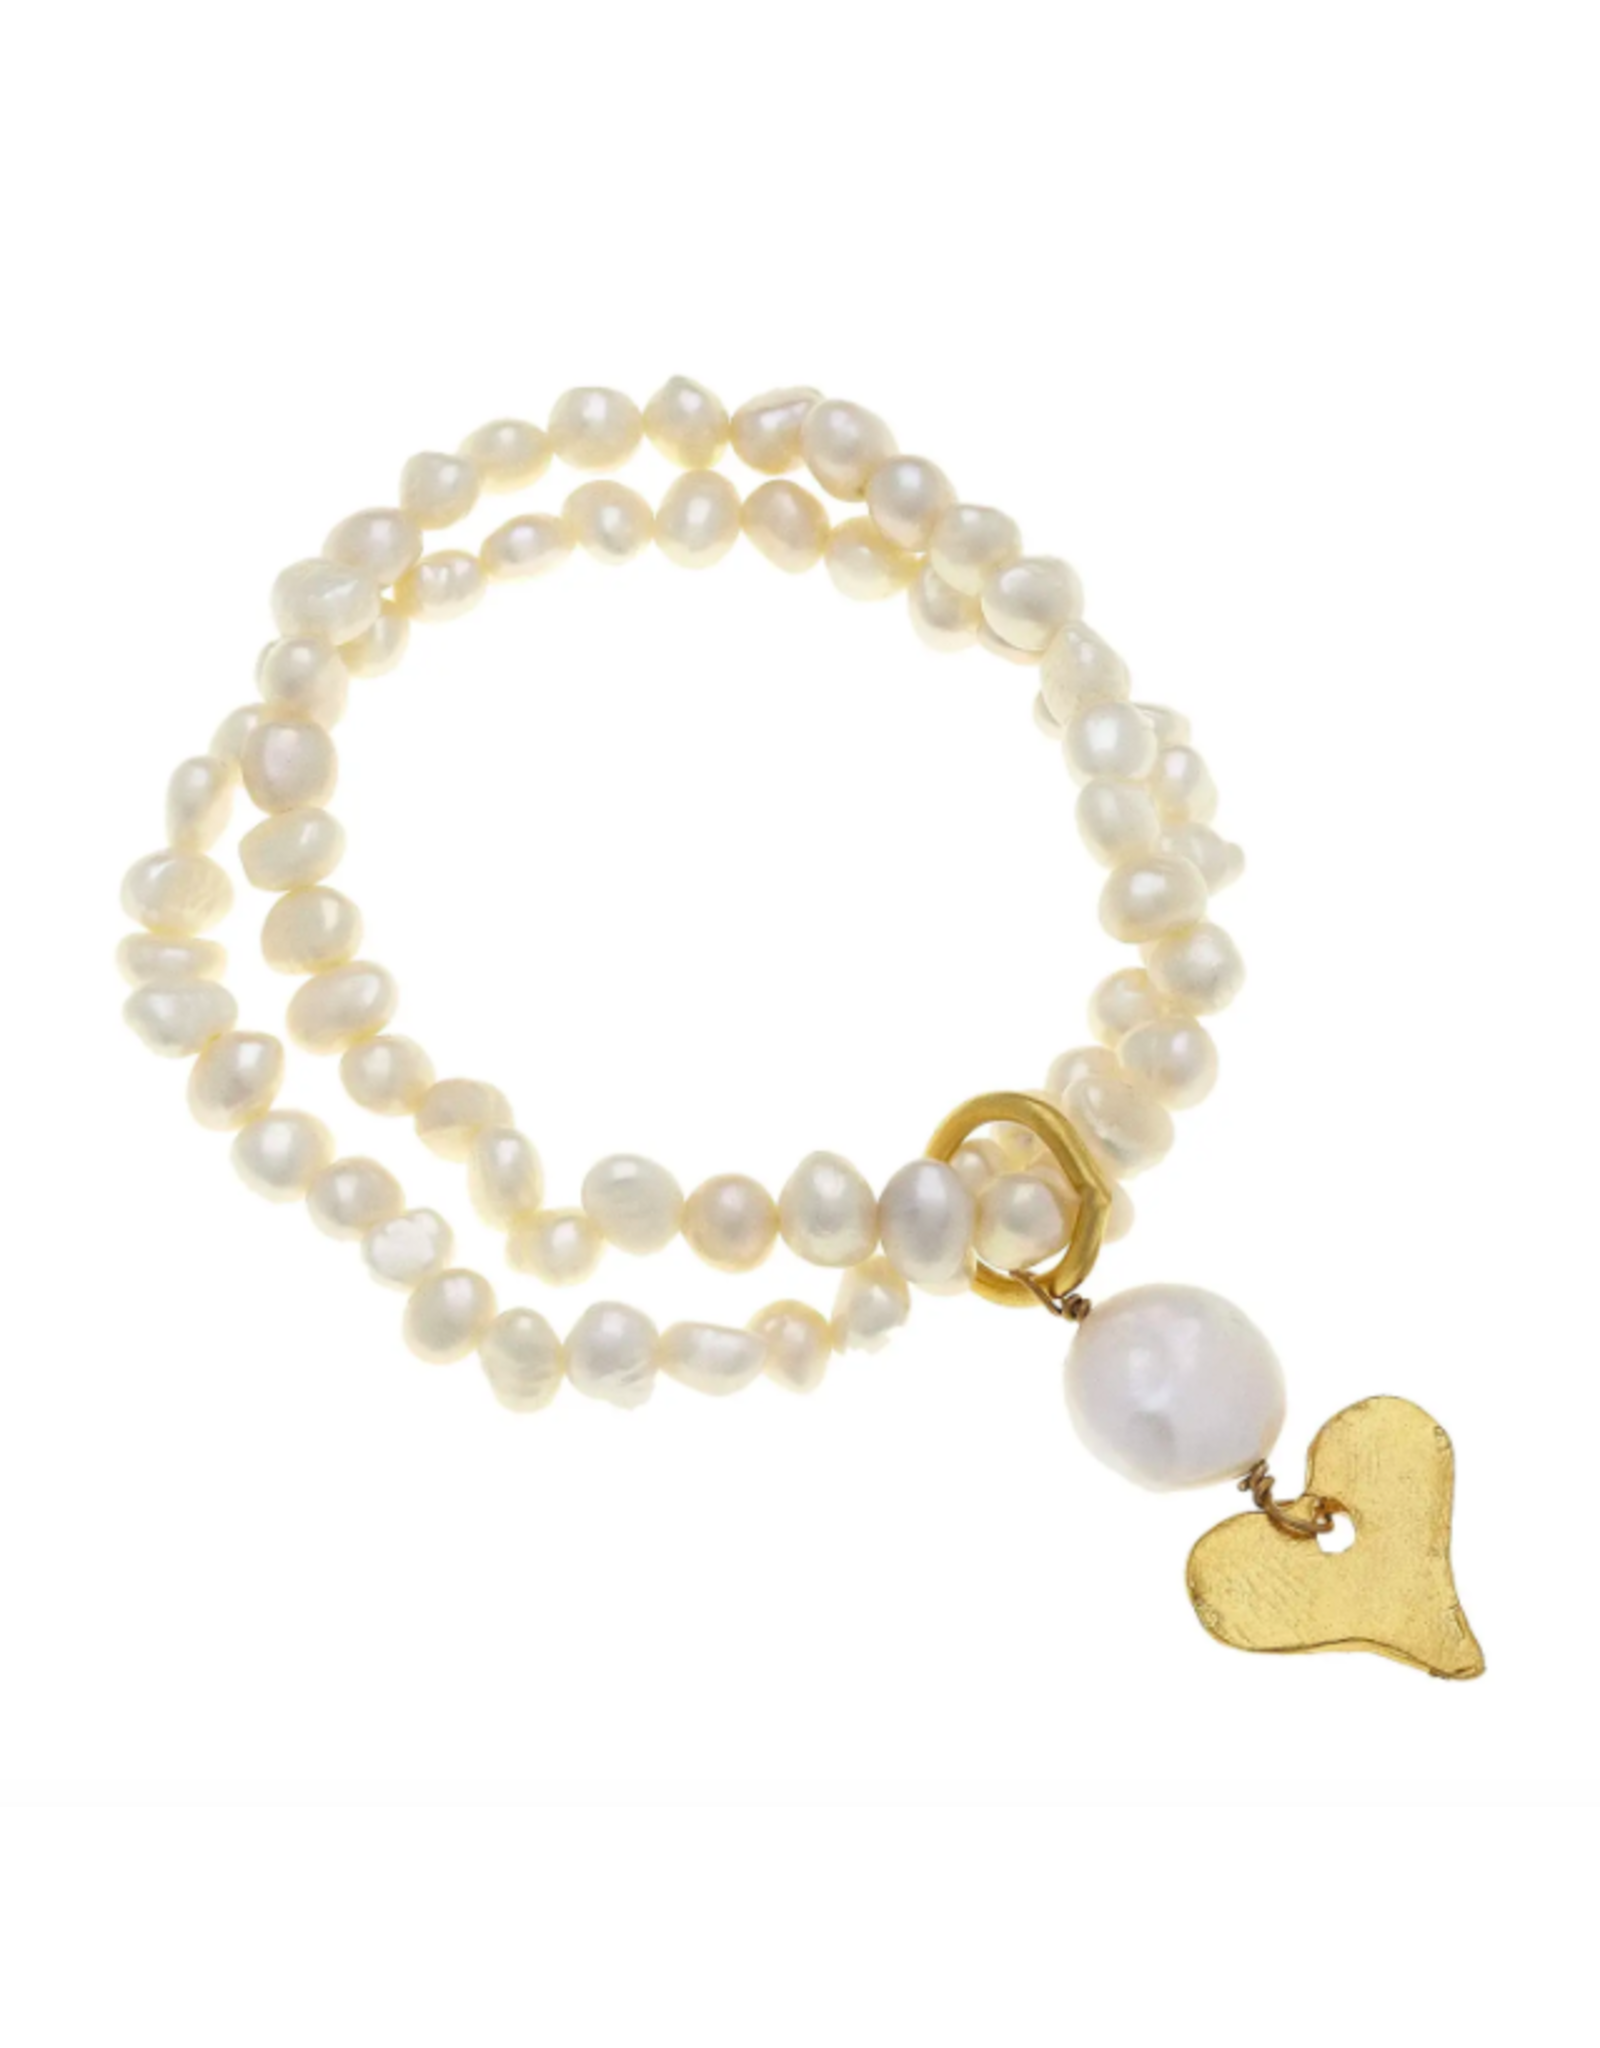 Susan Shaw Pearl Bracelet with Heart Charm by Susan Shaw